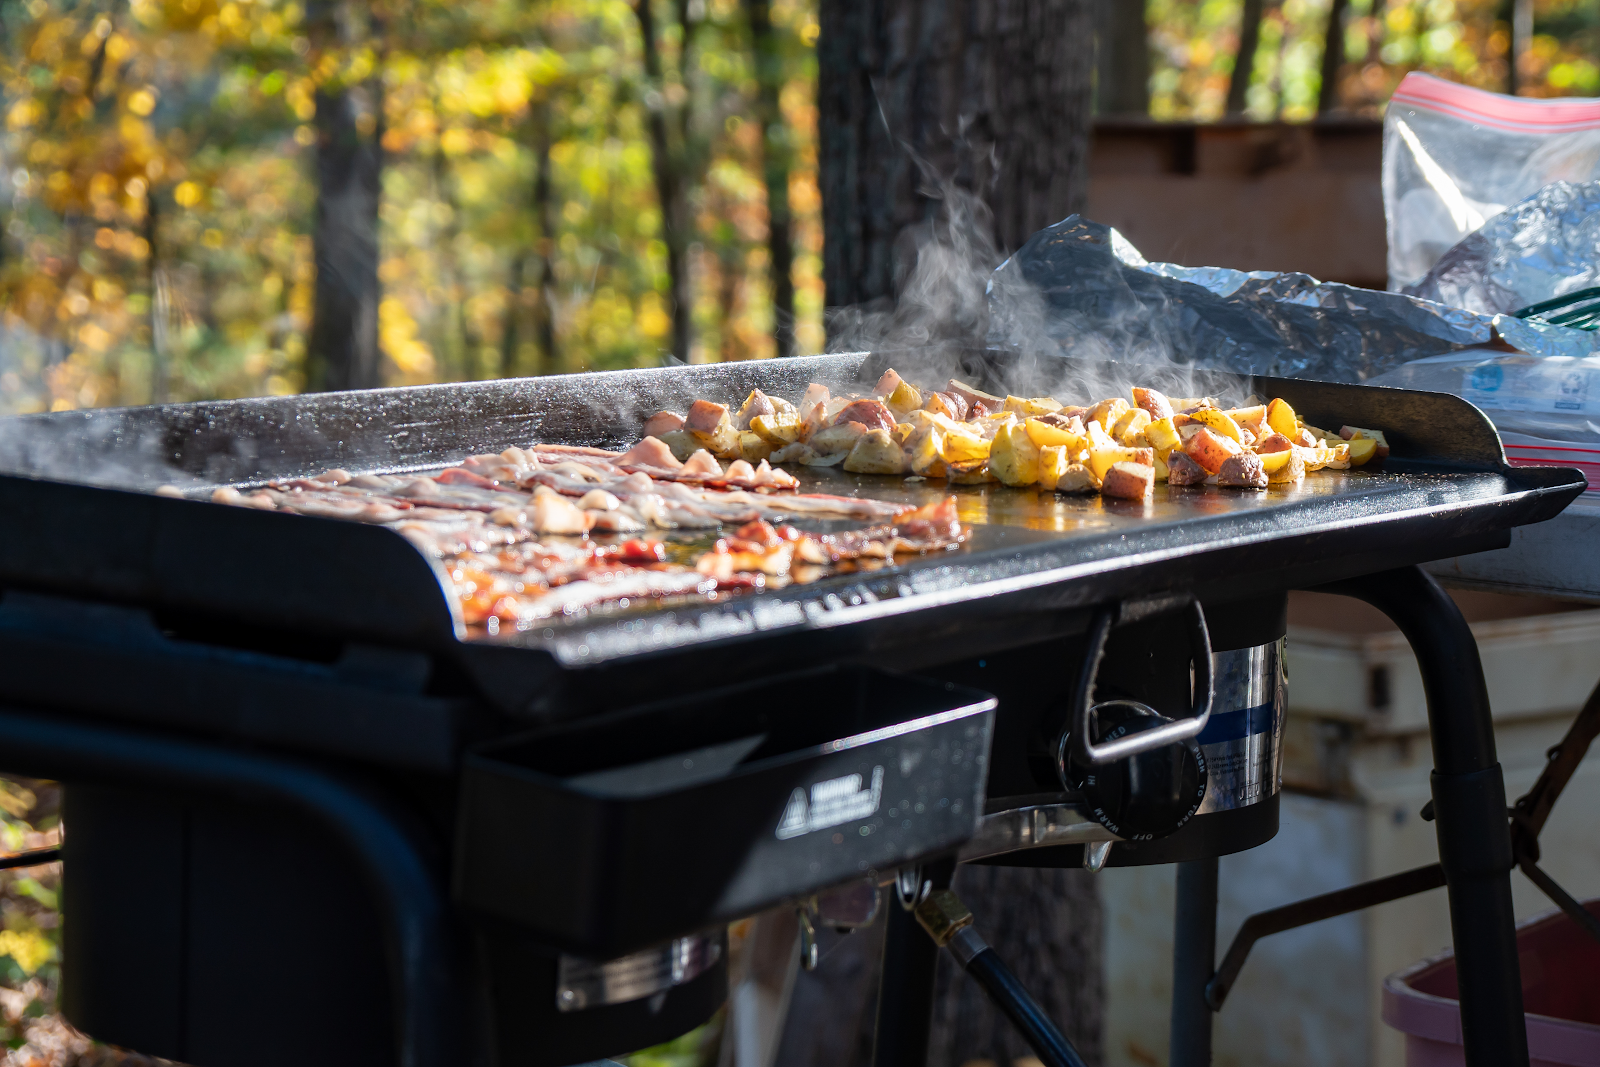 Food cooking on a flat top outdoor griddle